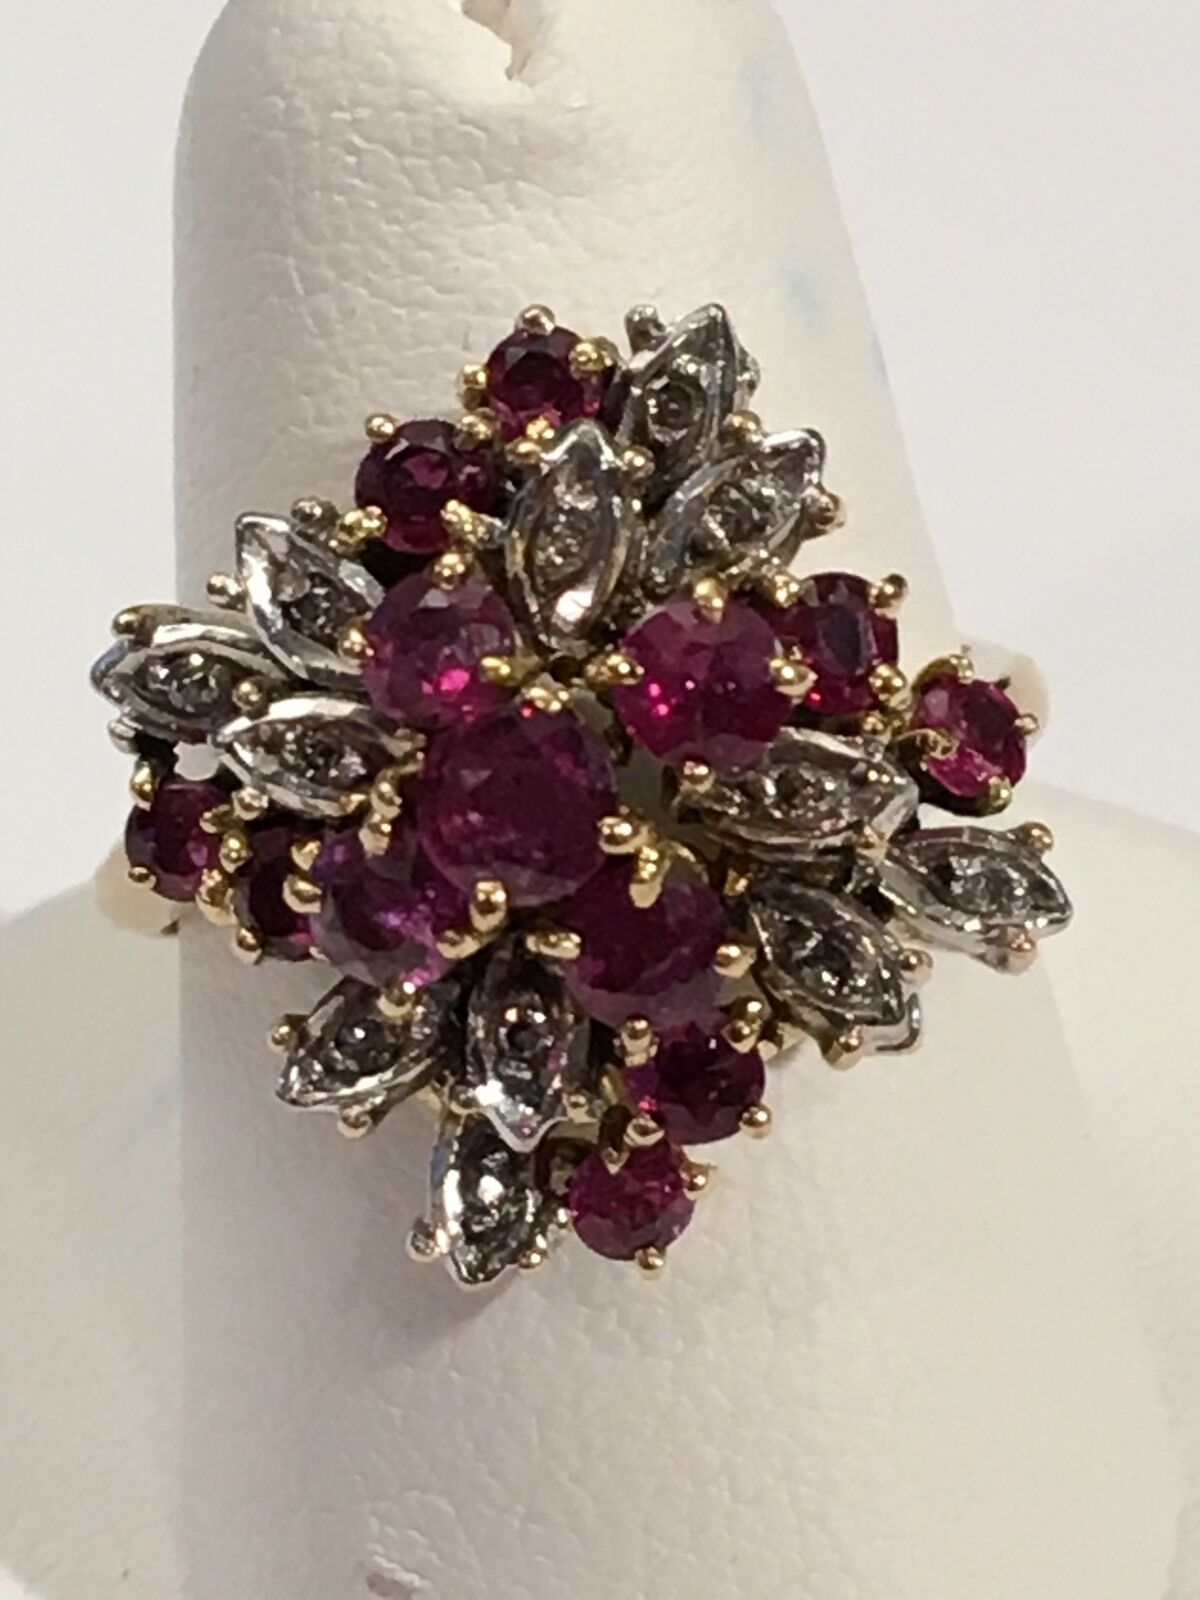 RUBY & DIAMOND 18K WHITE gold VINTAGE CLUSTER RING SZ 7.75 OVERSIZED MAGNIFICENT